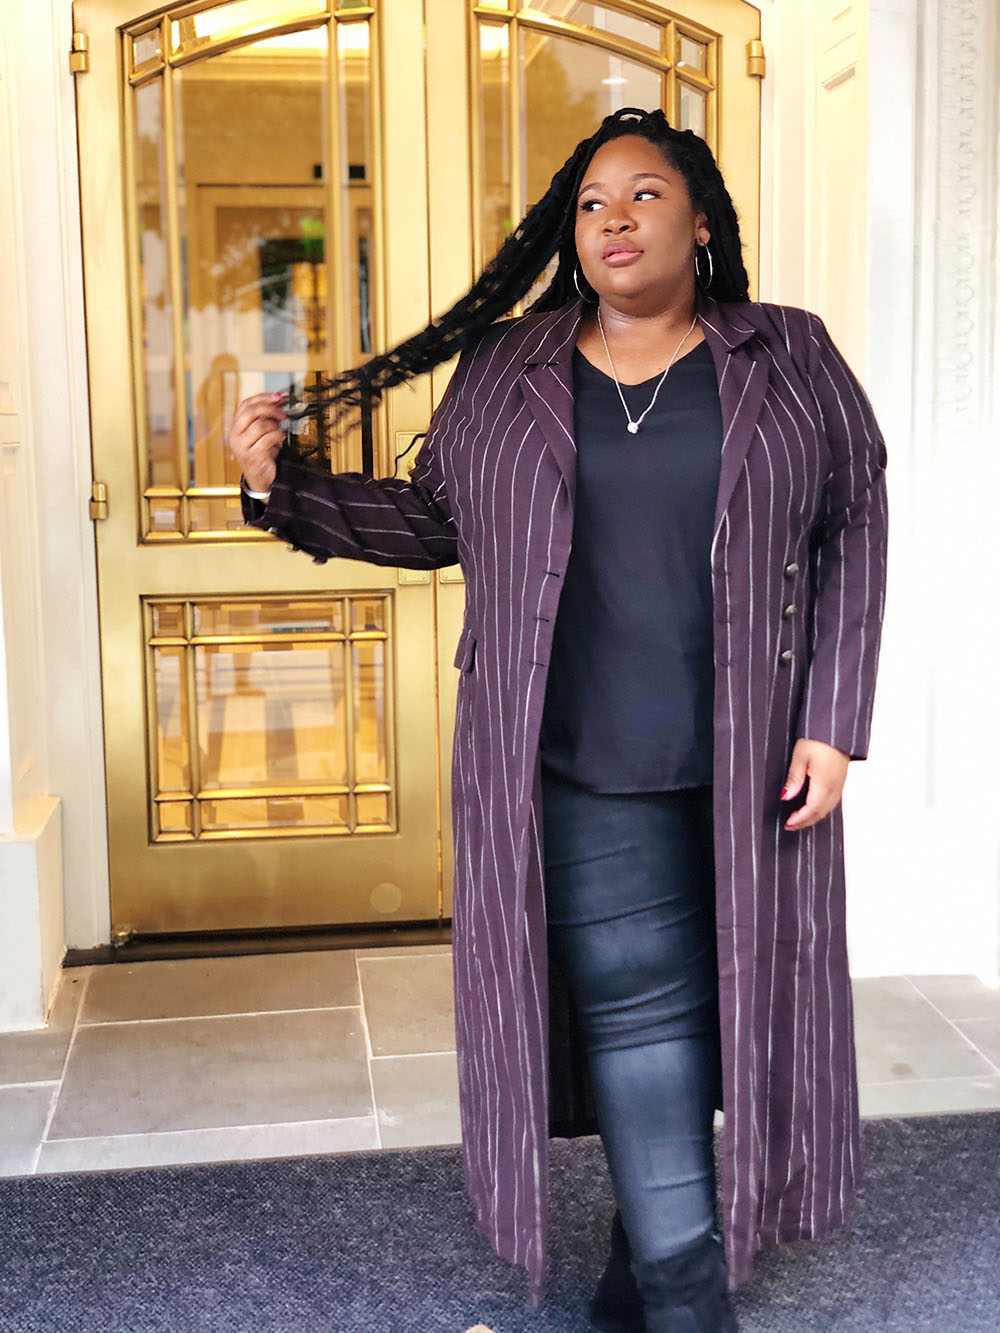 Purple outfit Stylevore with formal wear, jeans, denim